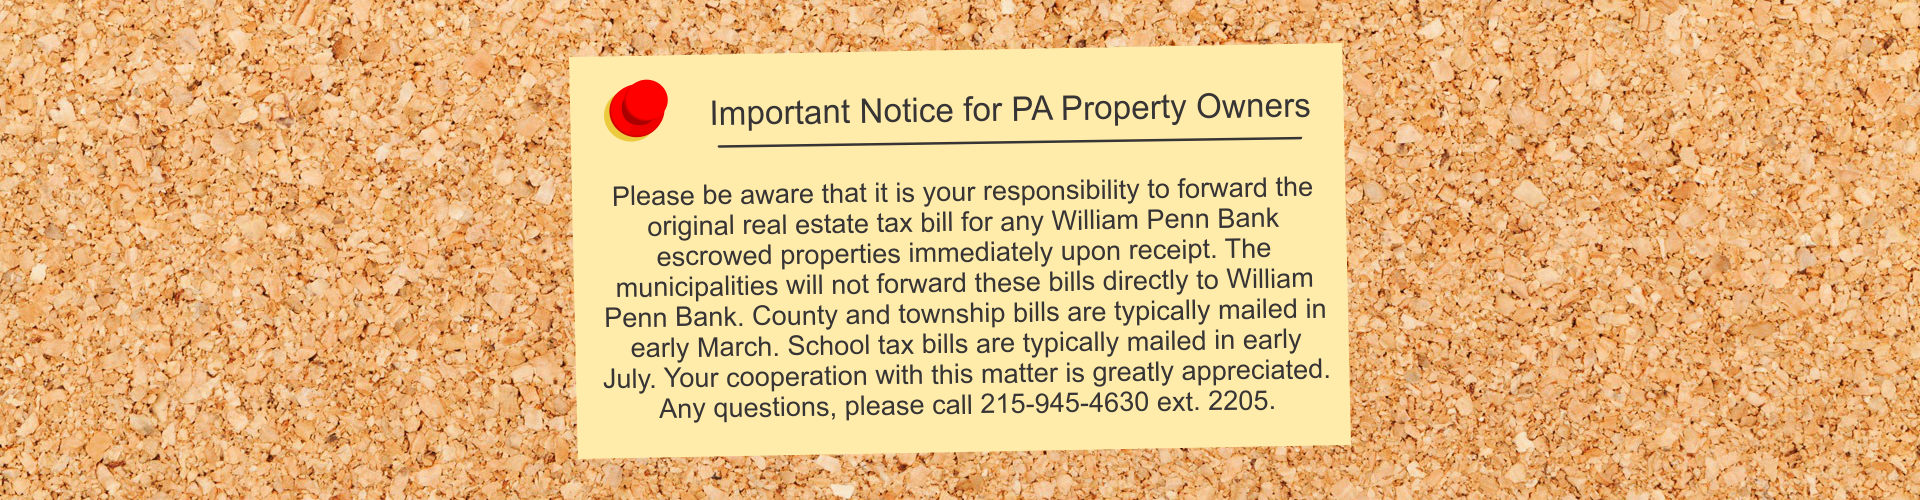 Important Notice for PA Property Owners